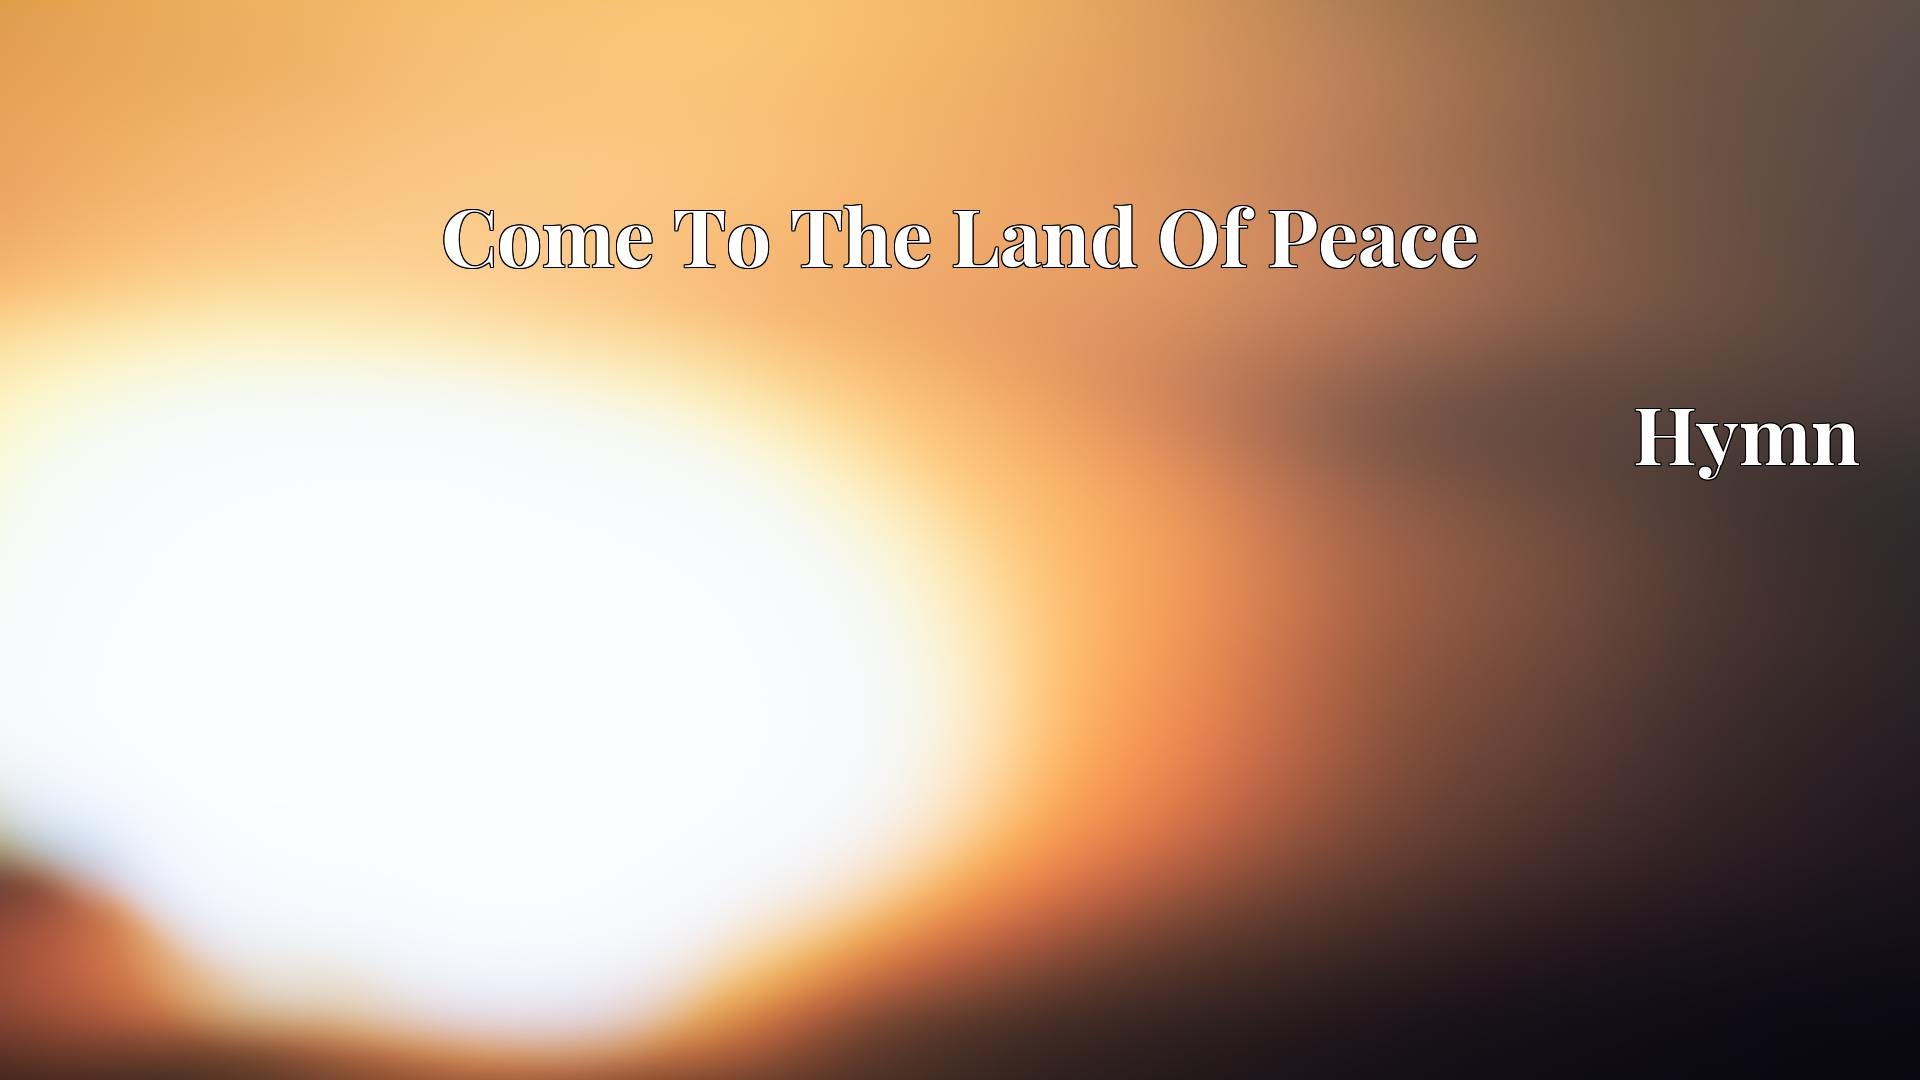 Come To The Land Of Peace Hymn Lyric